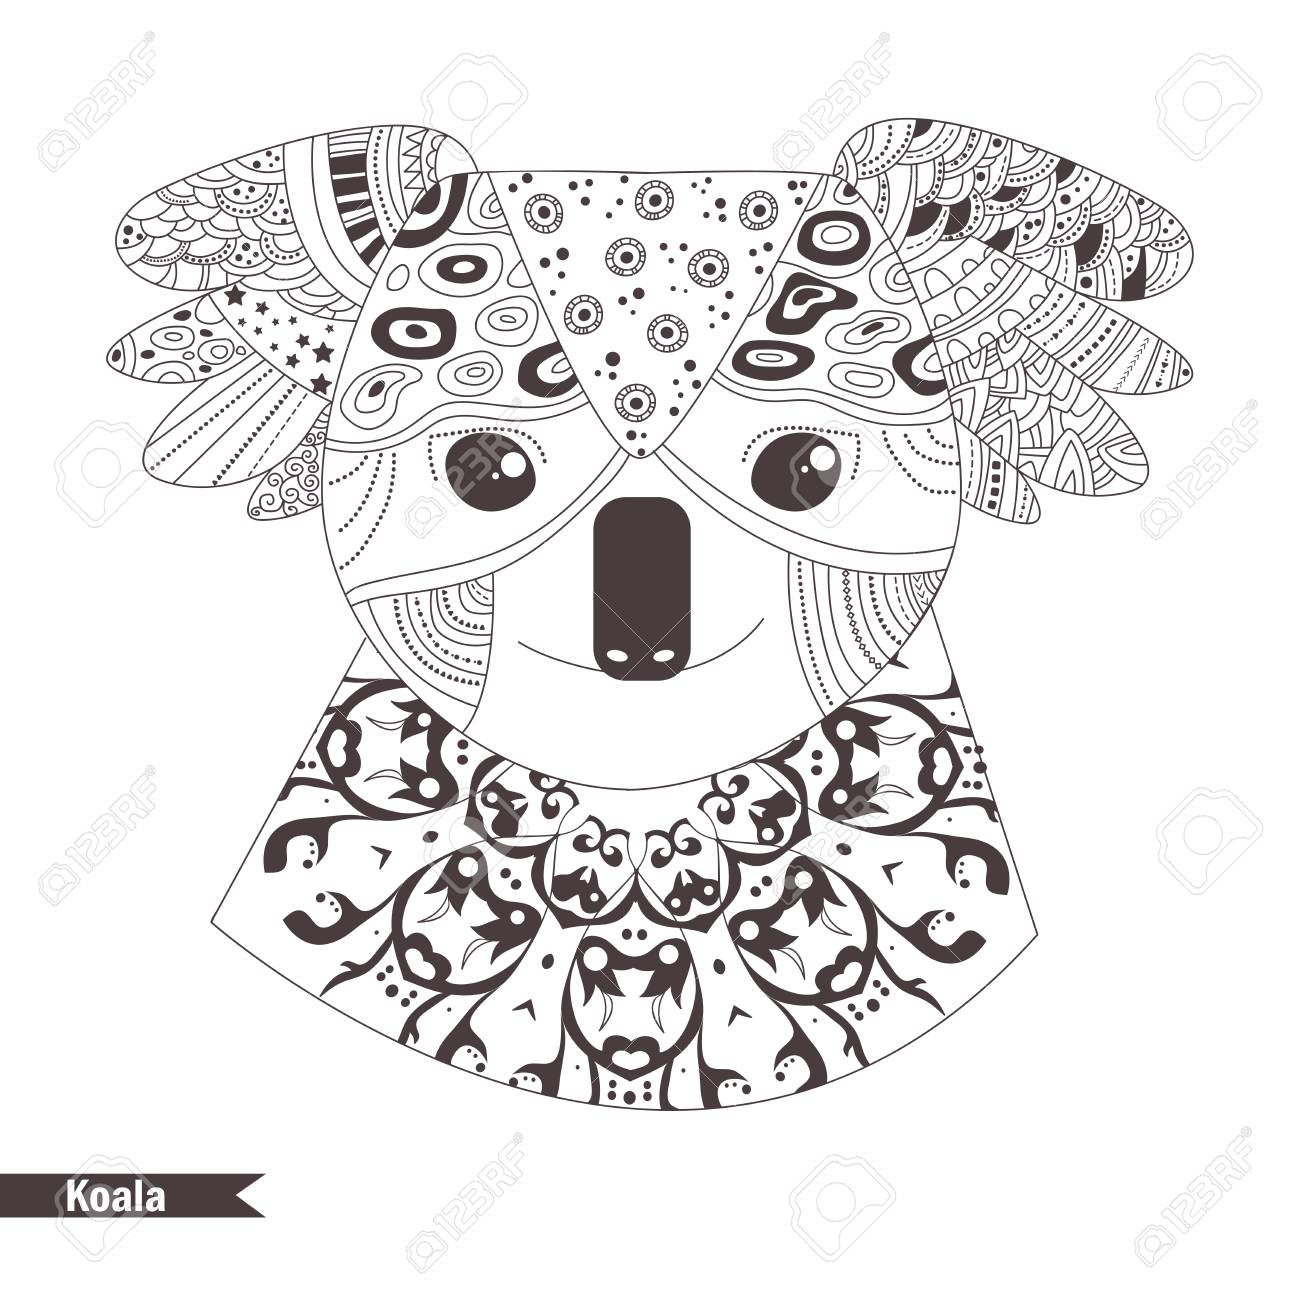 Koala Coloring Book For Adult Antistress Coloring Pages Hand - Koalas-coloring-pages